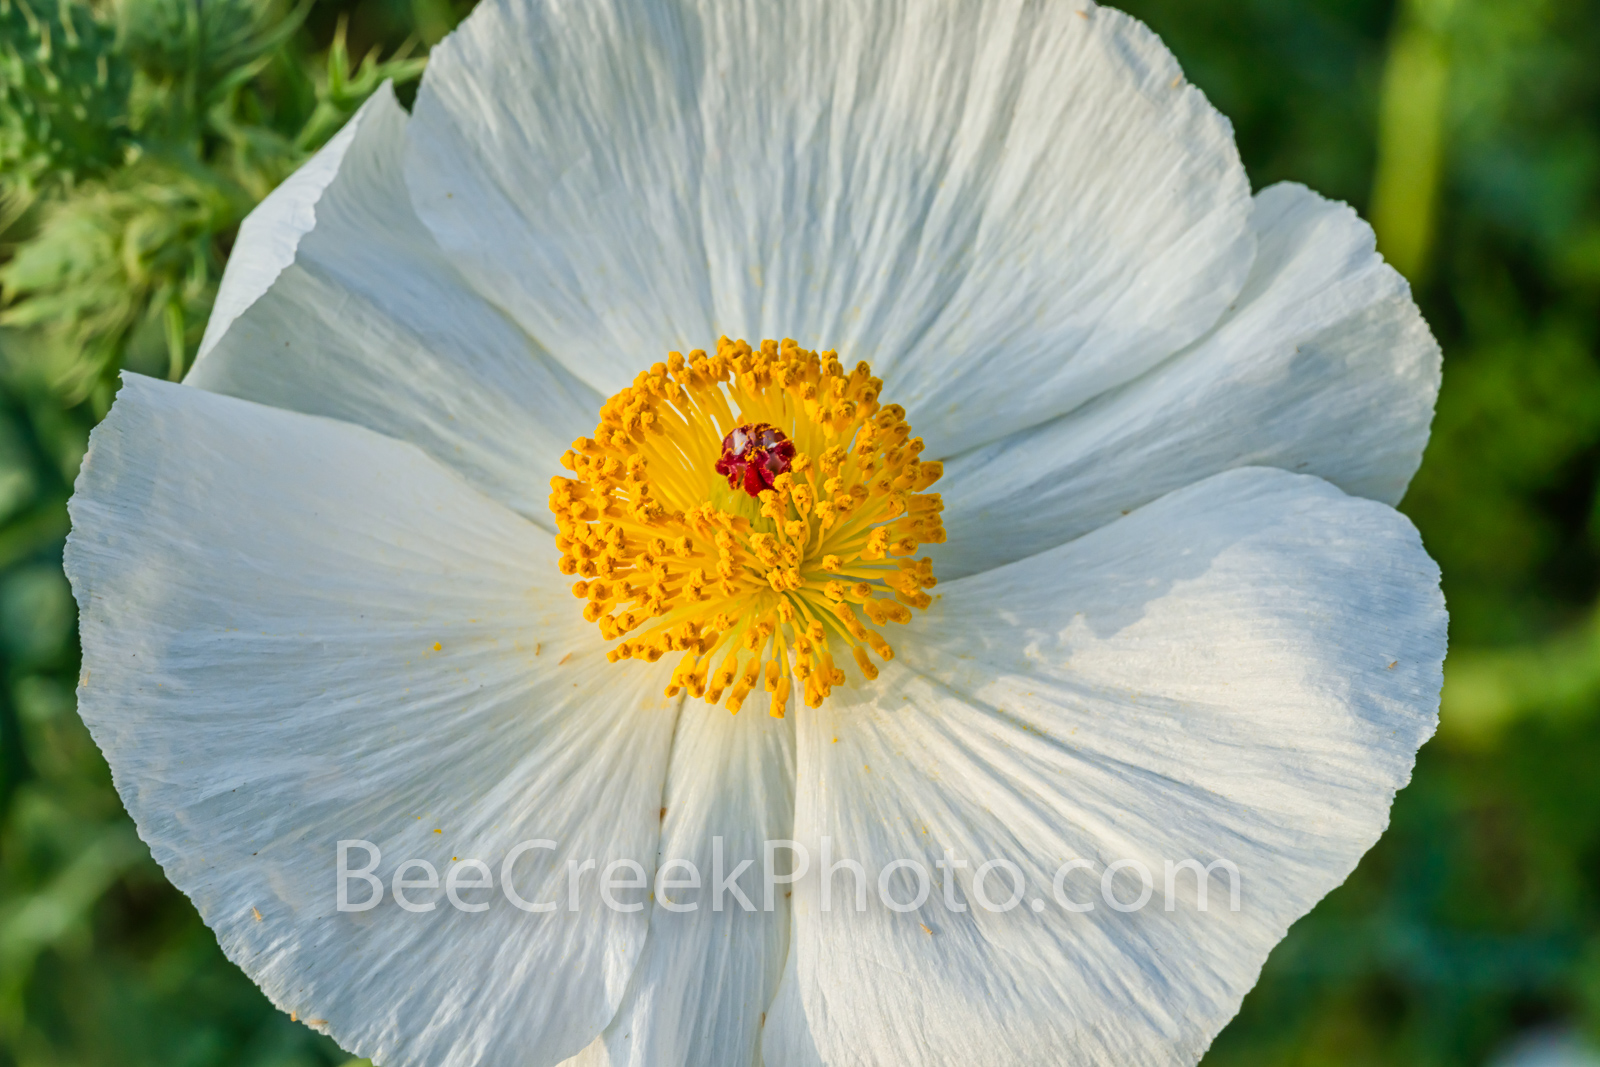 Texas Prickly Poppy - We love the wildflowers in Texas even our prickly poppies.  Prickly poppies grow quite well in the Texas...